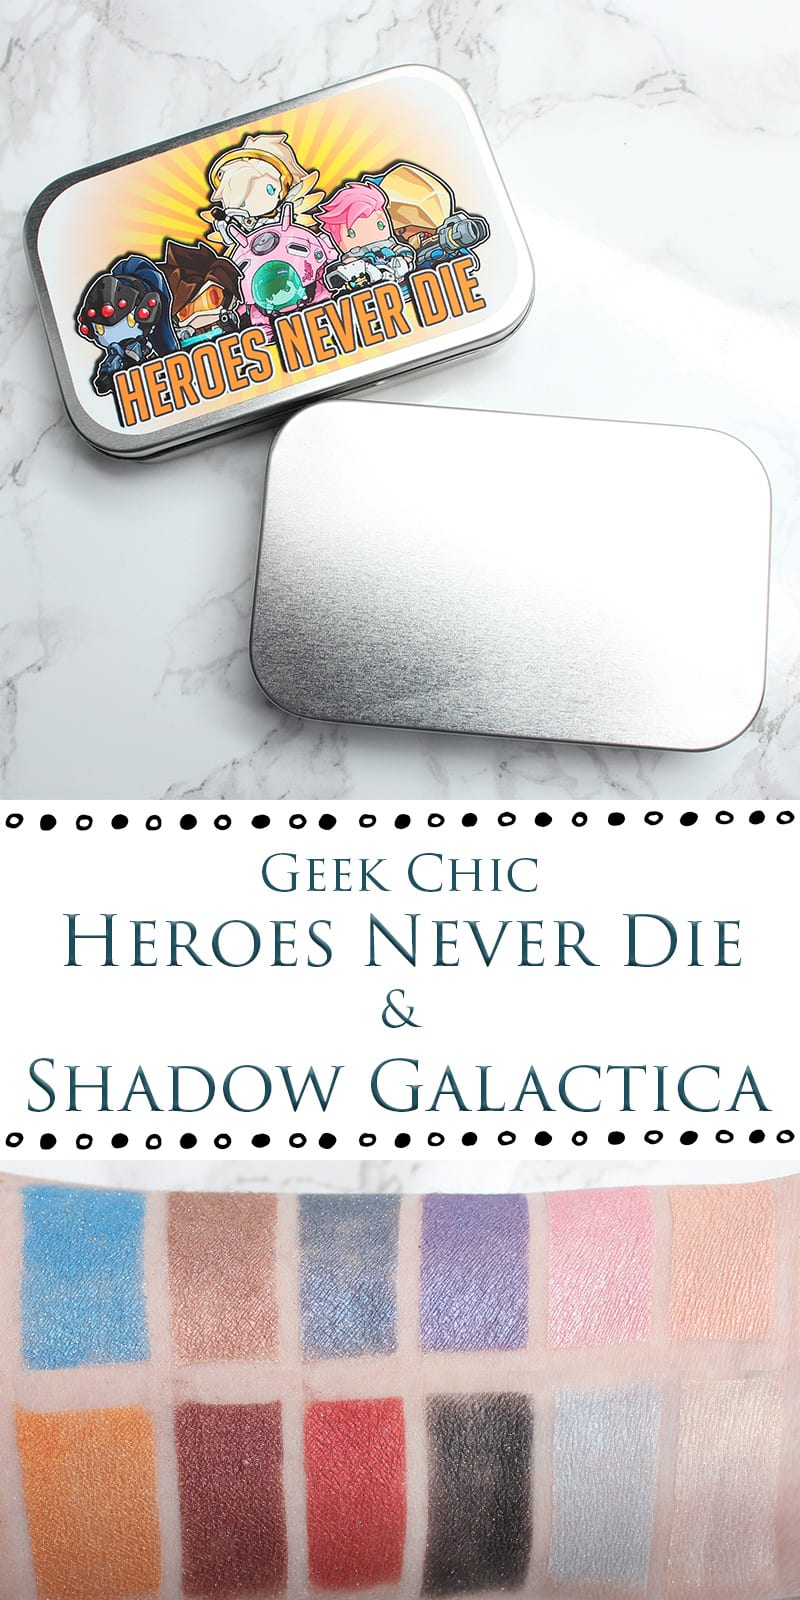 Geek Chic Heroes Never Die and Shadow Galactica Swatches